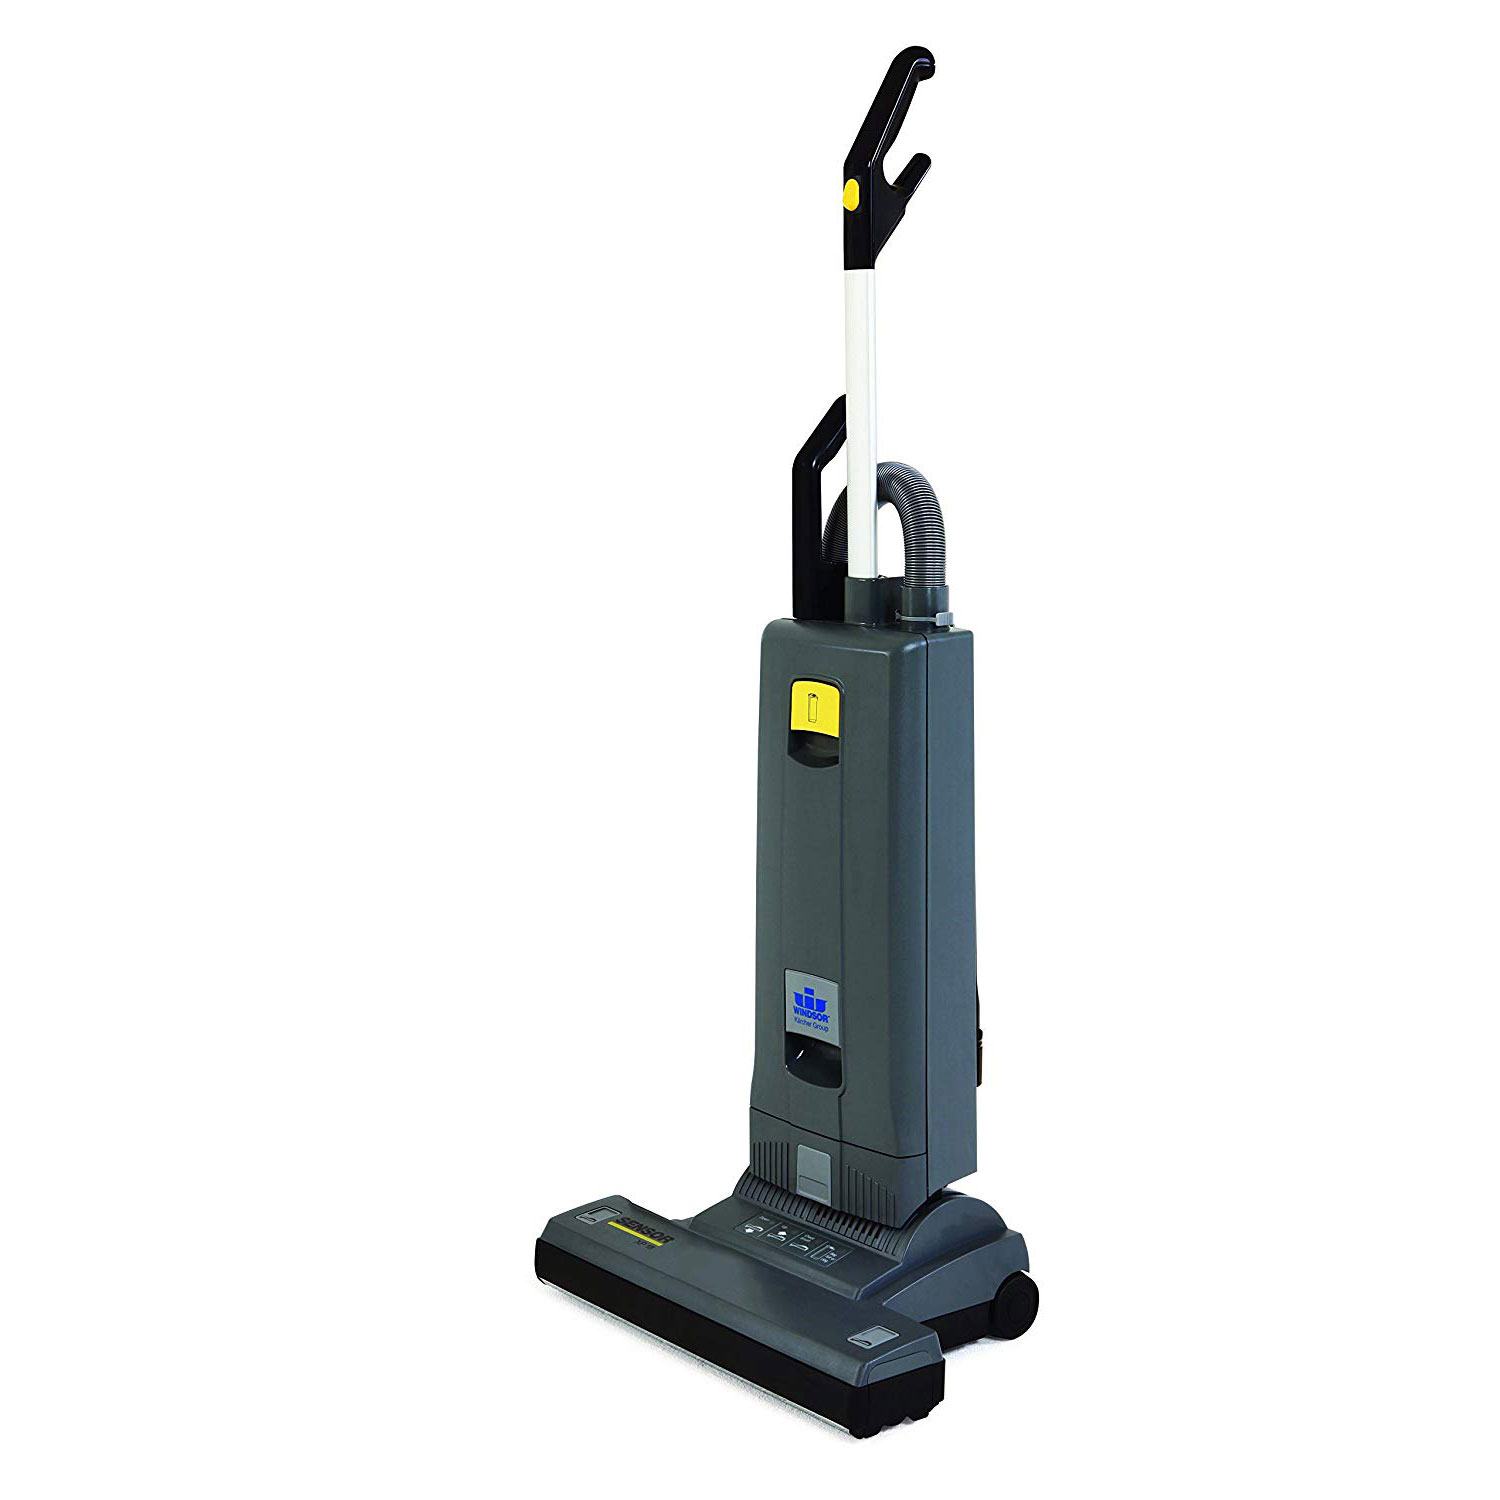 Windsor Sensor XP 18 Inch Upright Vacuum Cleaner w tools 1.012-030.0 Freight Included 3Yr Repair Protection 1.012-613.0